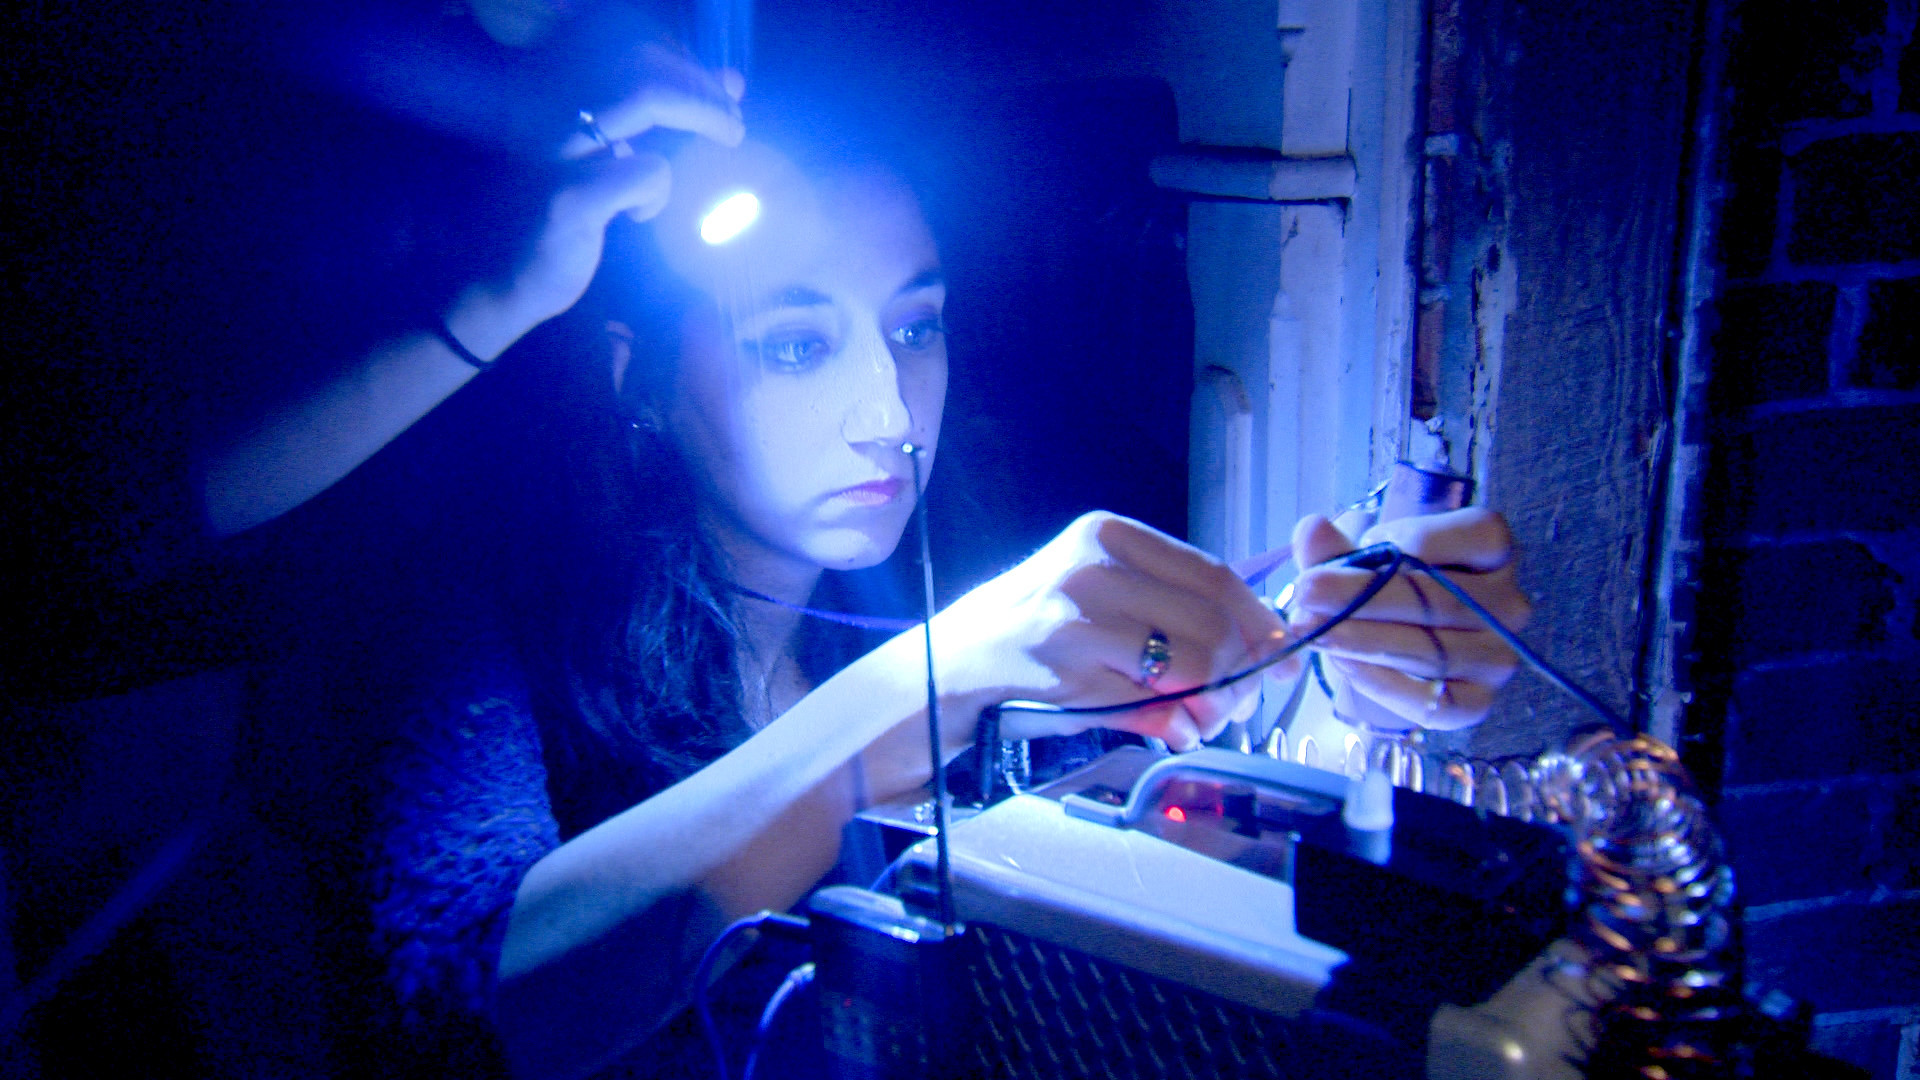 ghostbusters_girl_wiring_equipment